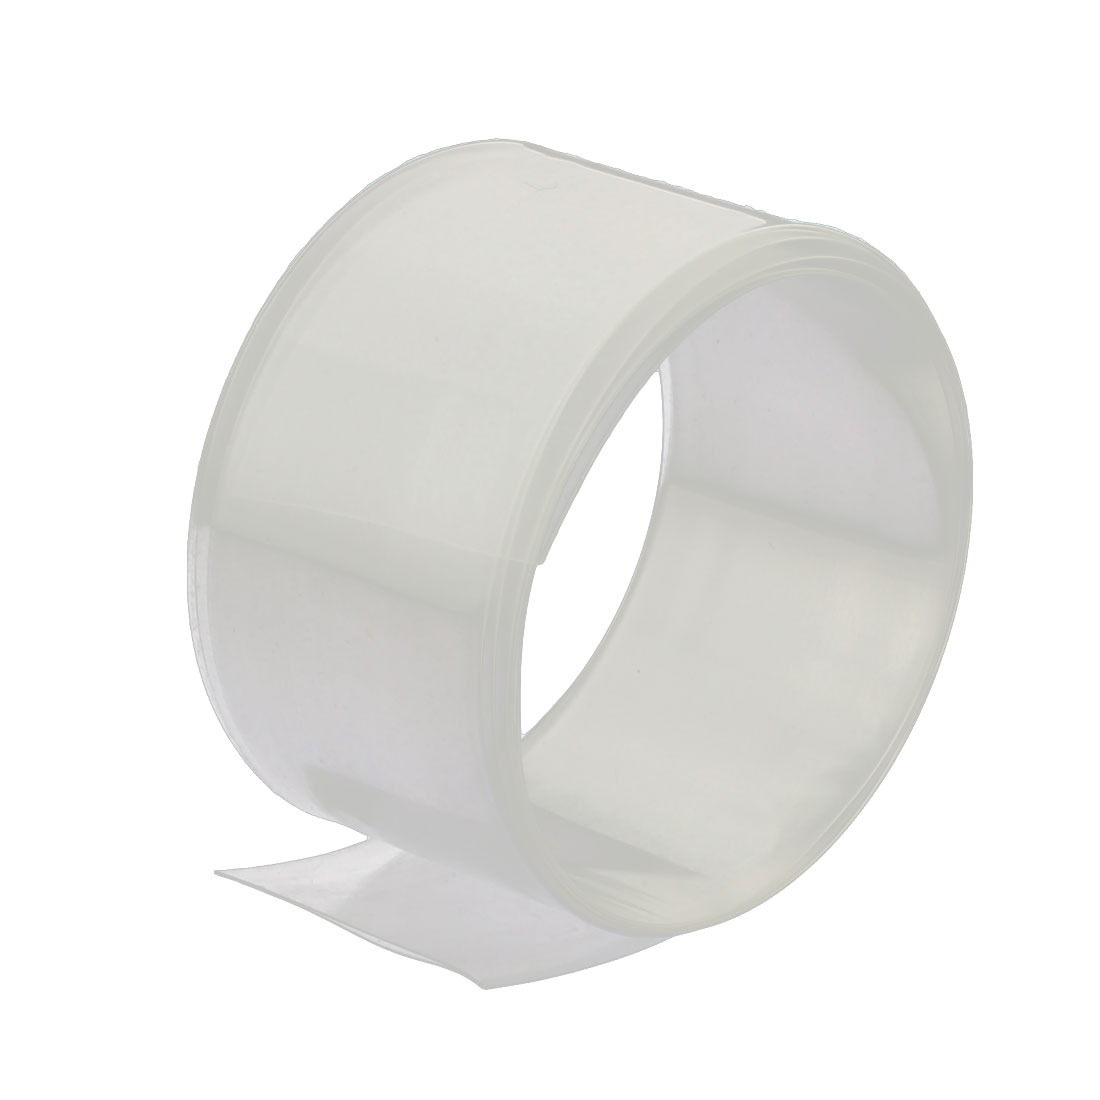 31mm Flat Width 1M Length PVC Heat Shrinkable Tube Clear for Capacitive Battery